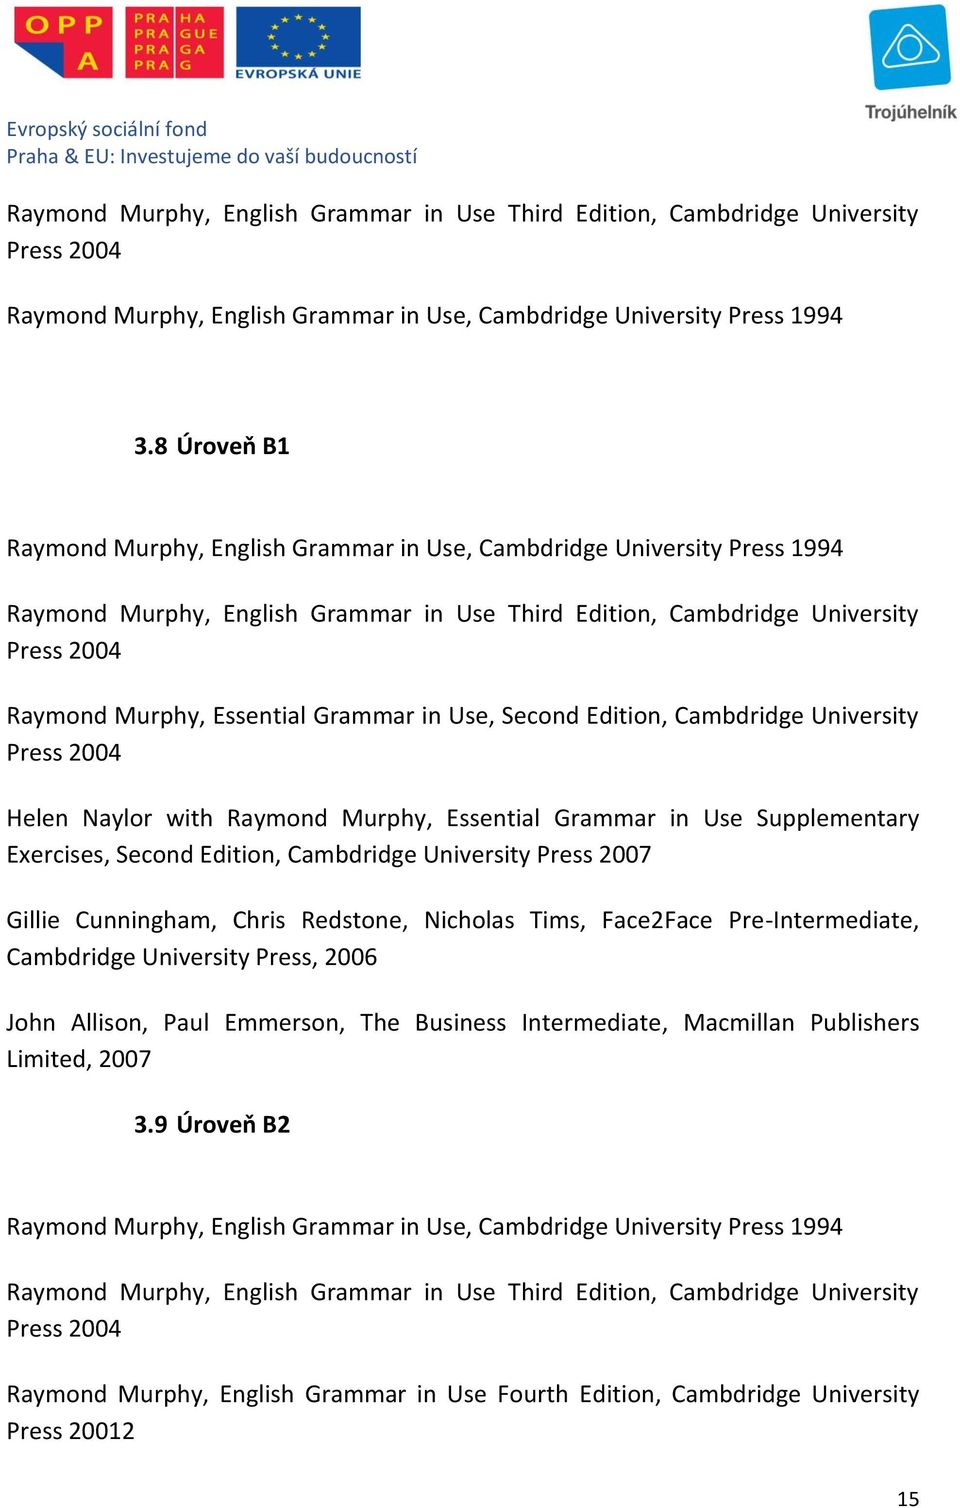 Grammar in Use, Second Edition, Cambdridge University Press 2004 Helen Naylor with Raymond Murphy, Essential Grammar in Use Supplementary Exercises, Second Edition, Cambdridge University Press 2007